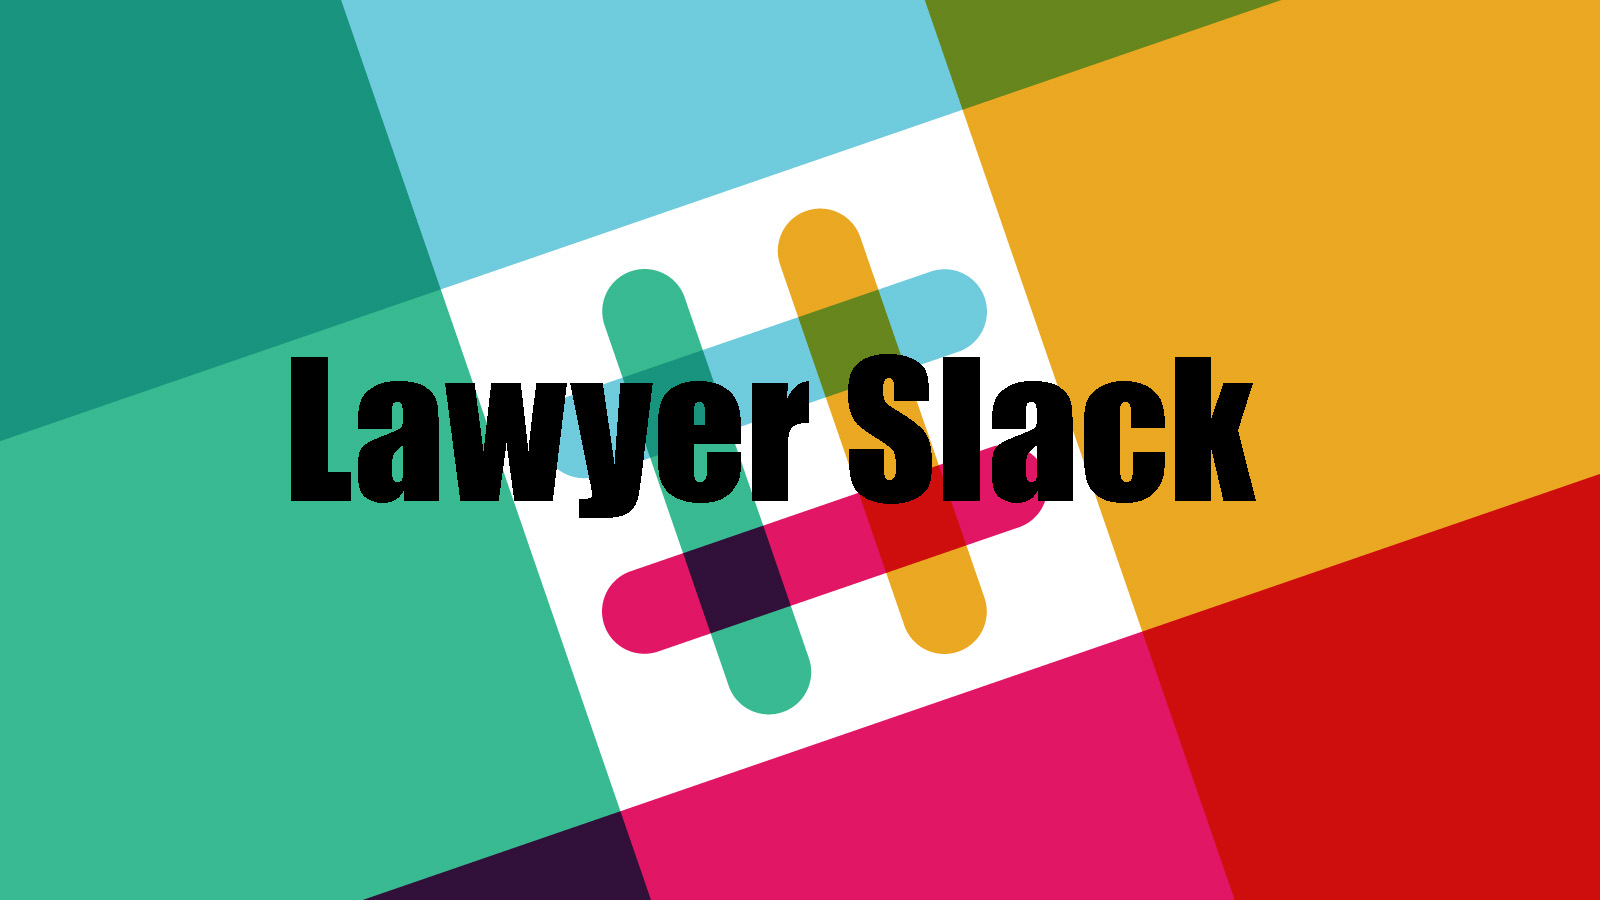 LawyerSlack Mailbag: Should I go to lawschool? Aussie Edition